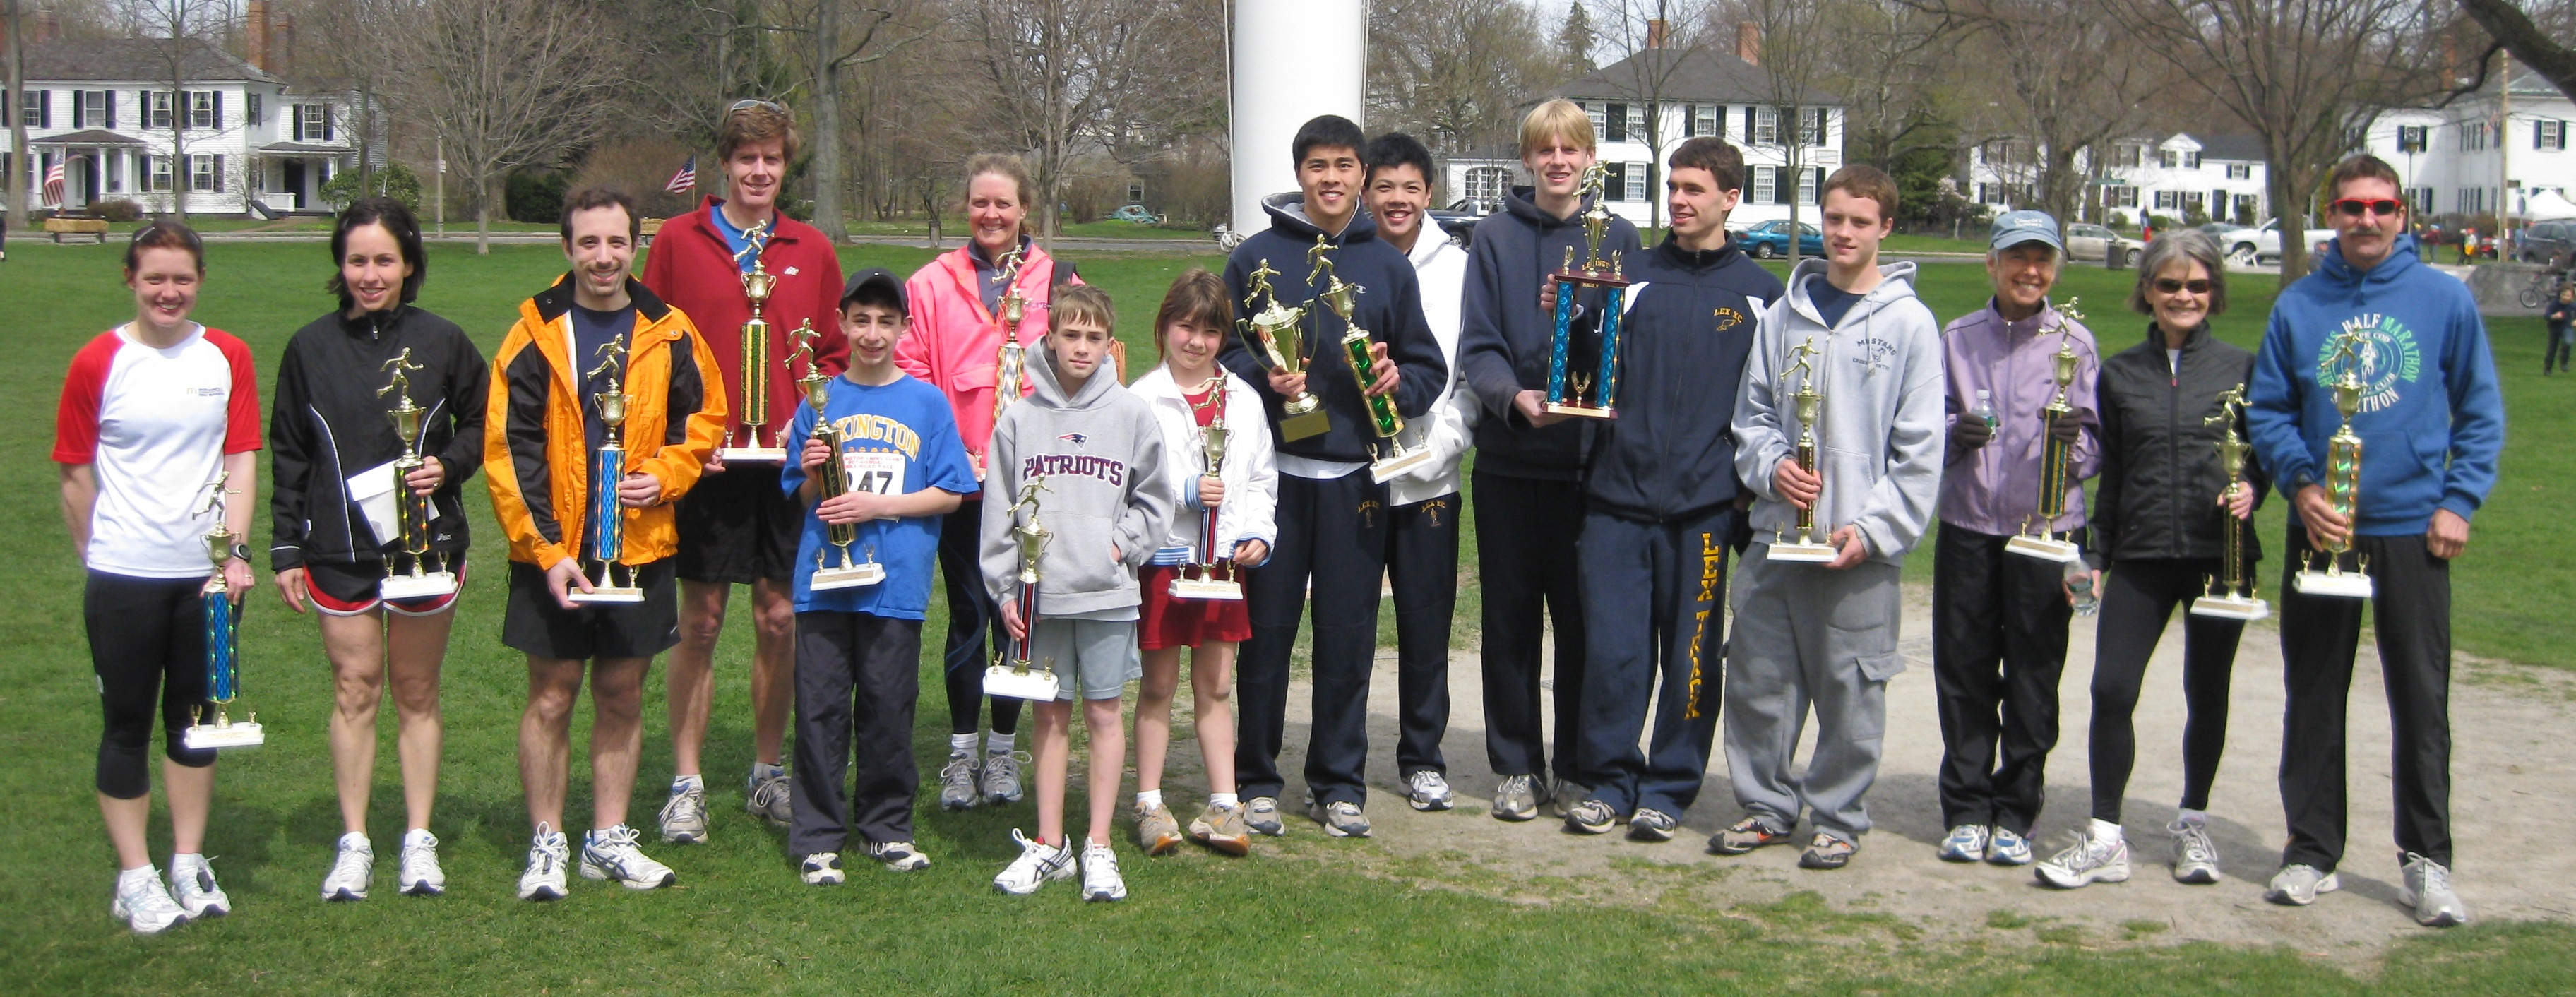 2009 Patriots Day Road Race Award Winners